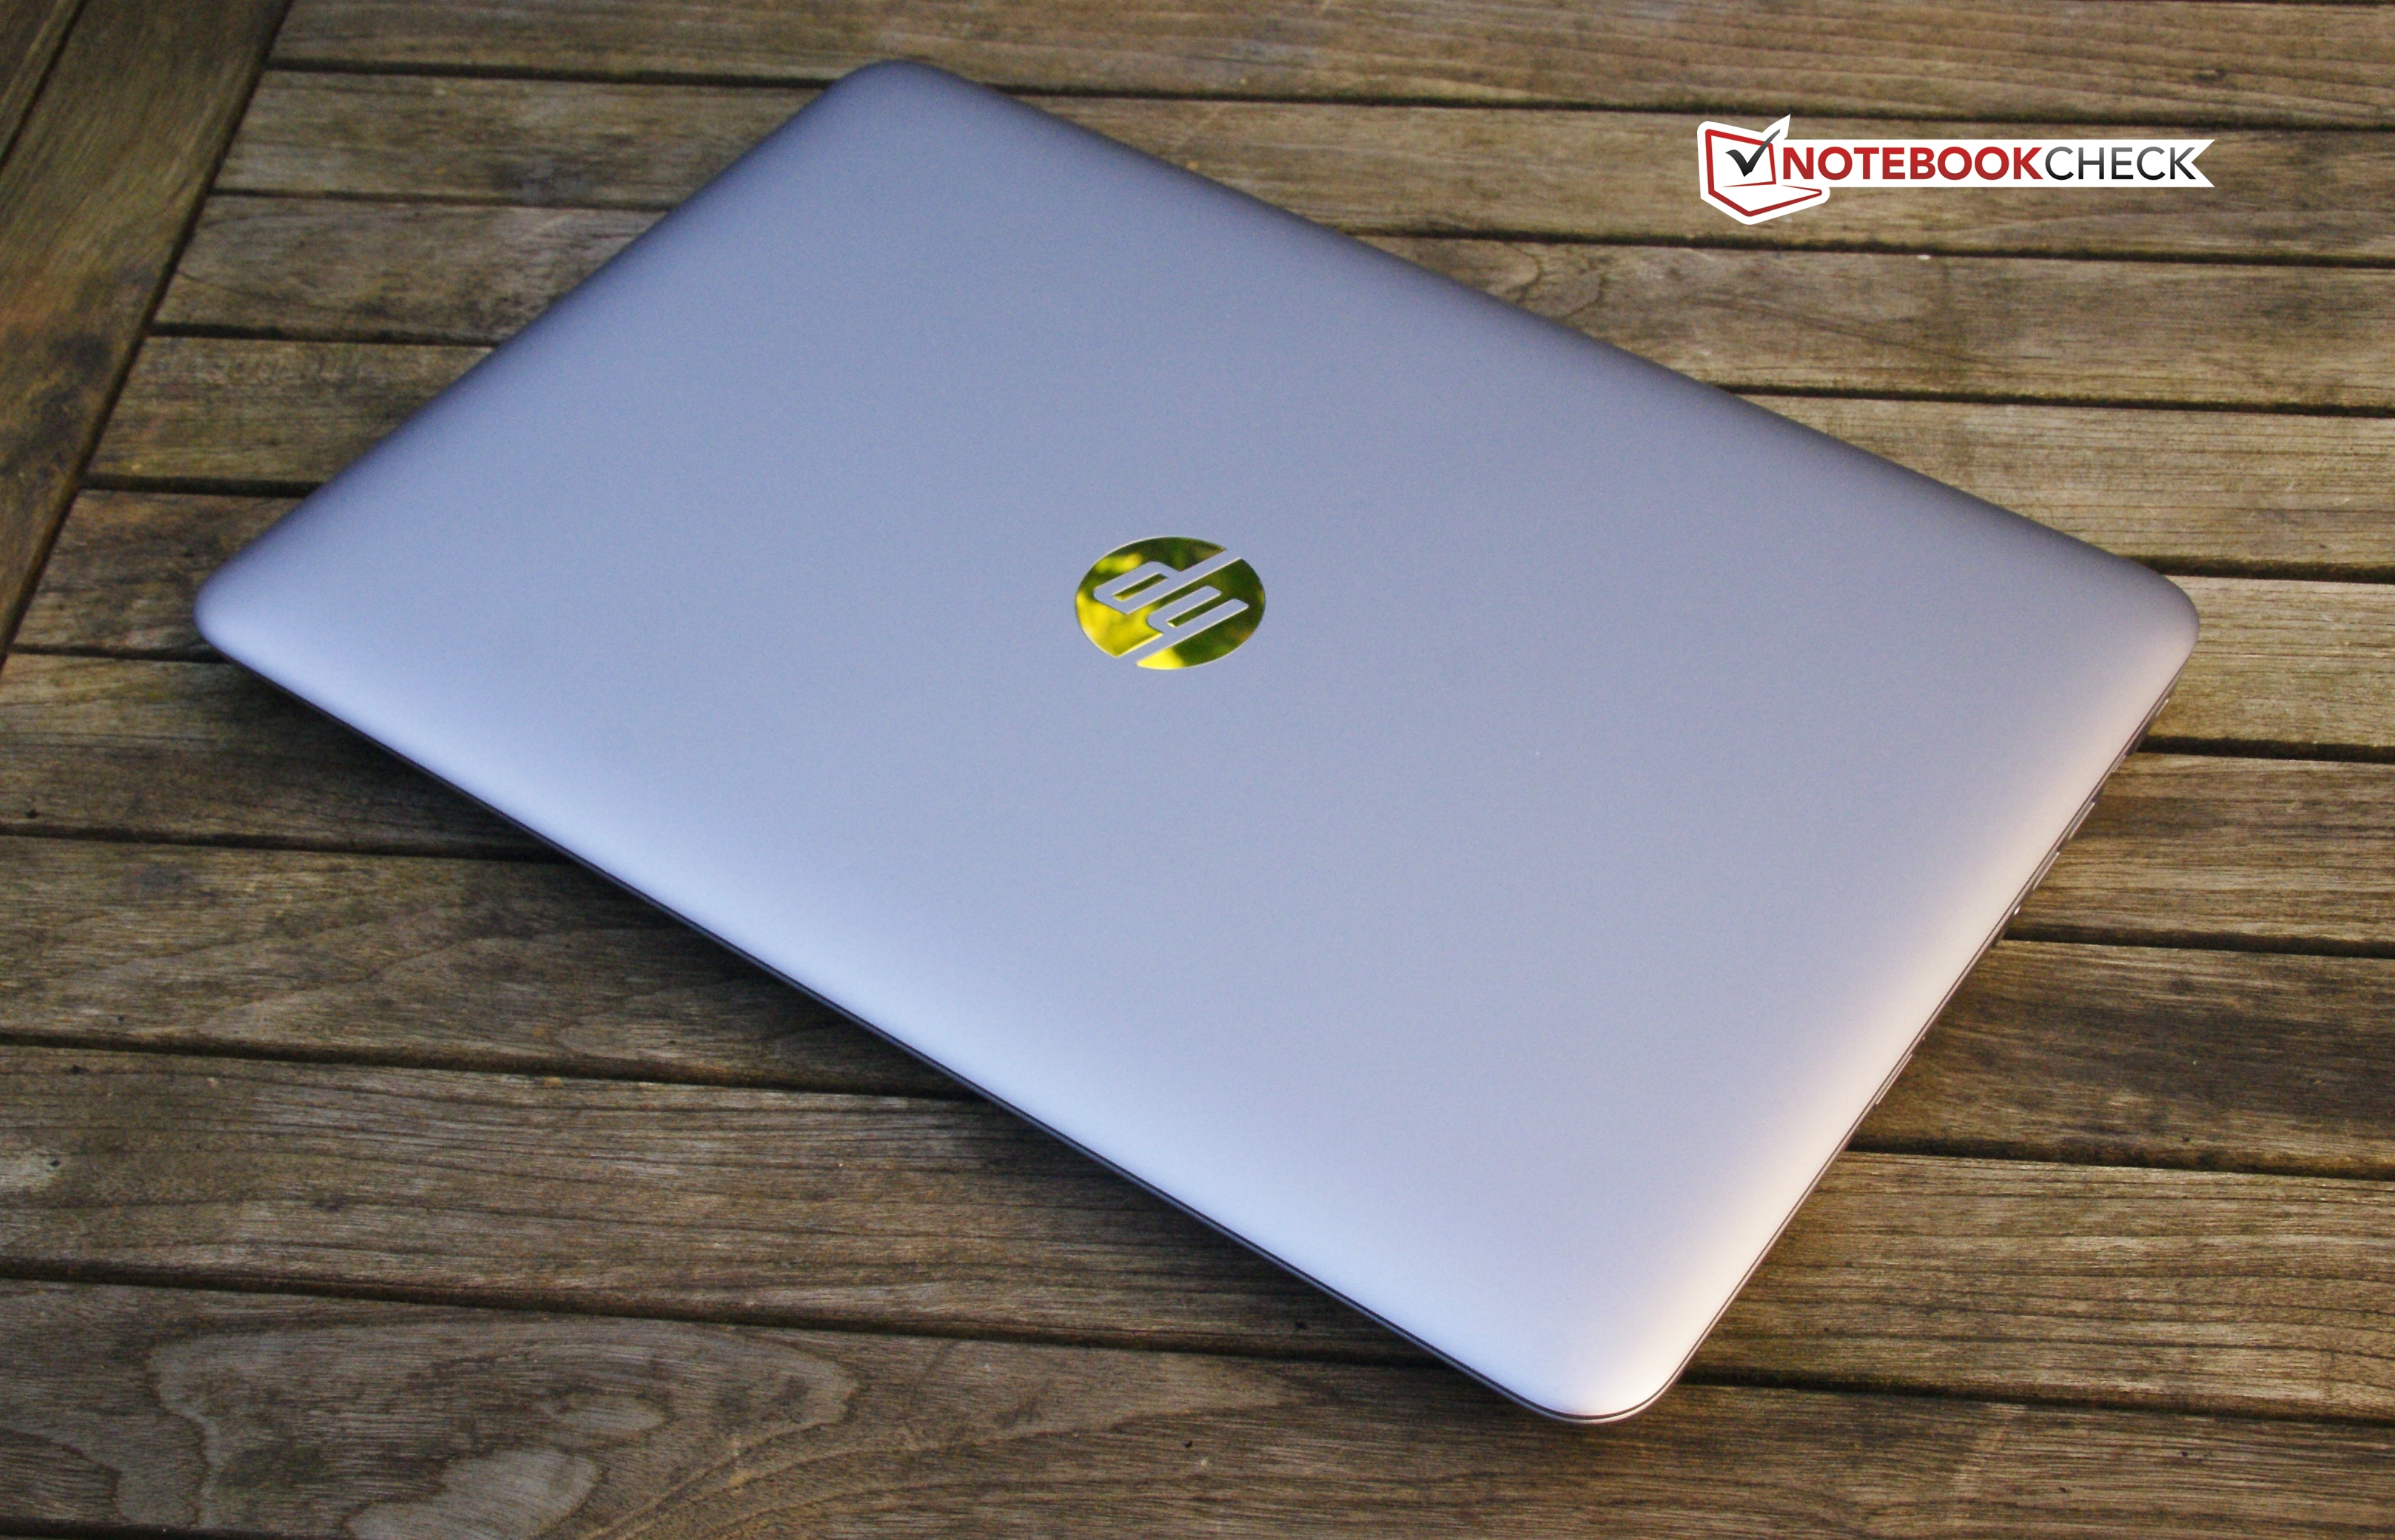 Hp Probook 450 G4 Hp Probook 450 G4 Y8b60ea Notebook Review Notebookcheck